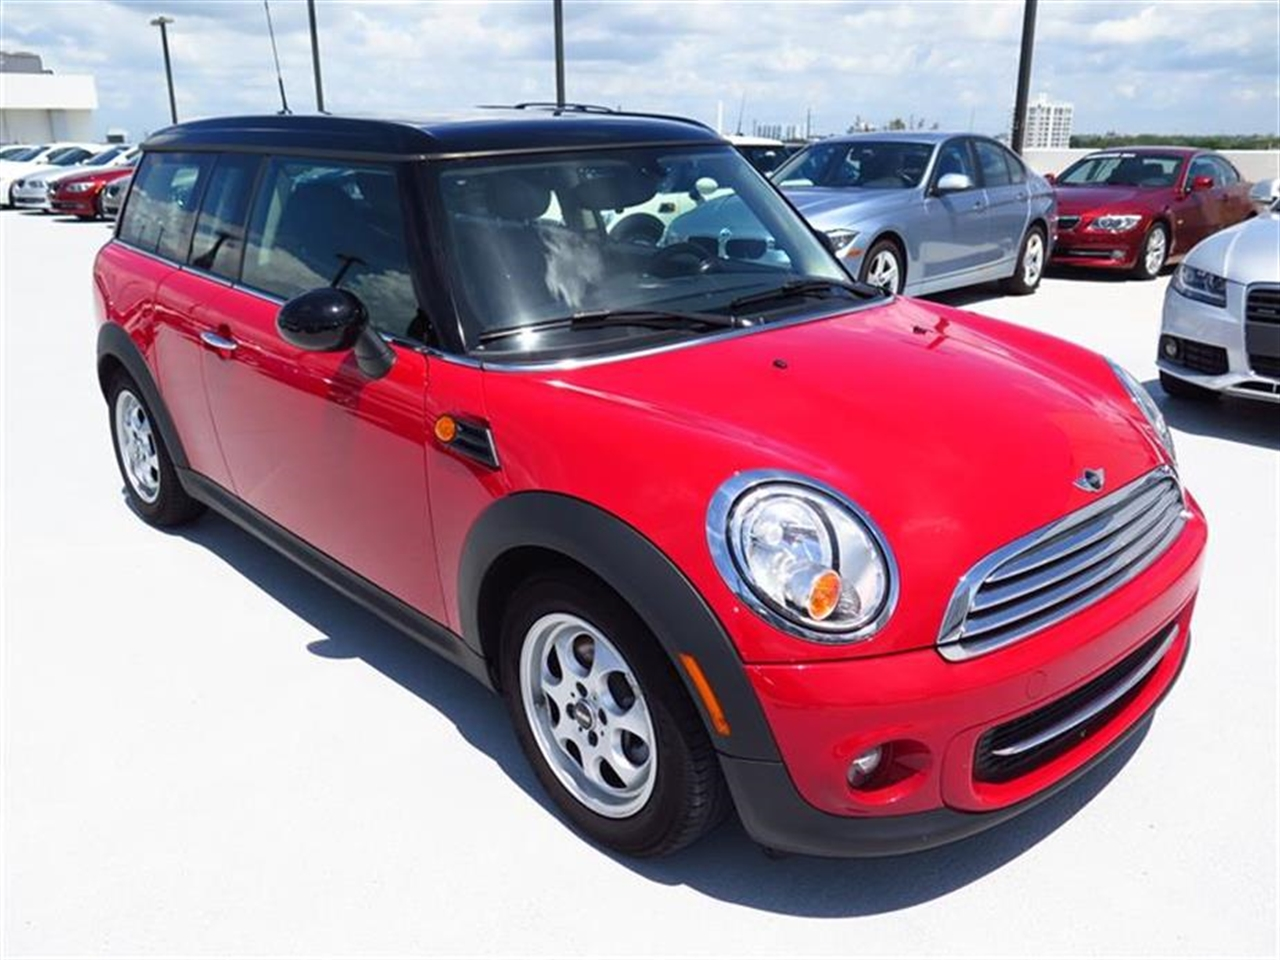 2013 MINI COOPER CLUBMAN 2dr Cpe 13149 miles 1 rear cup holder 2 12V pwr outlets 5050 spli